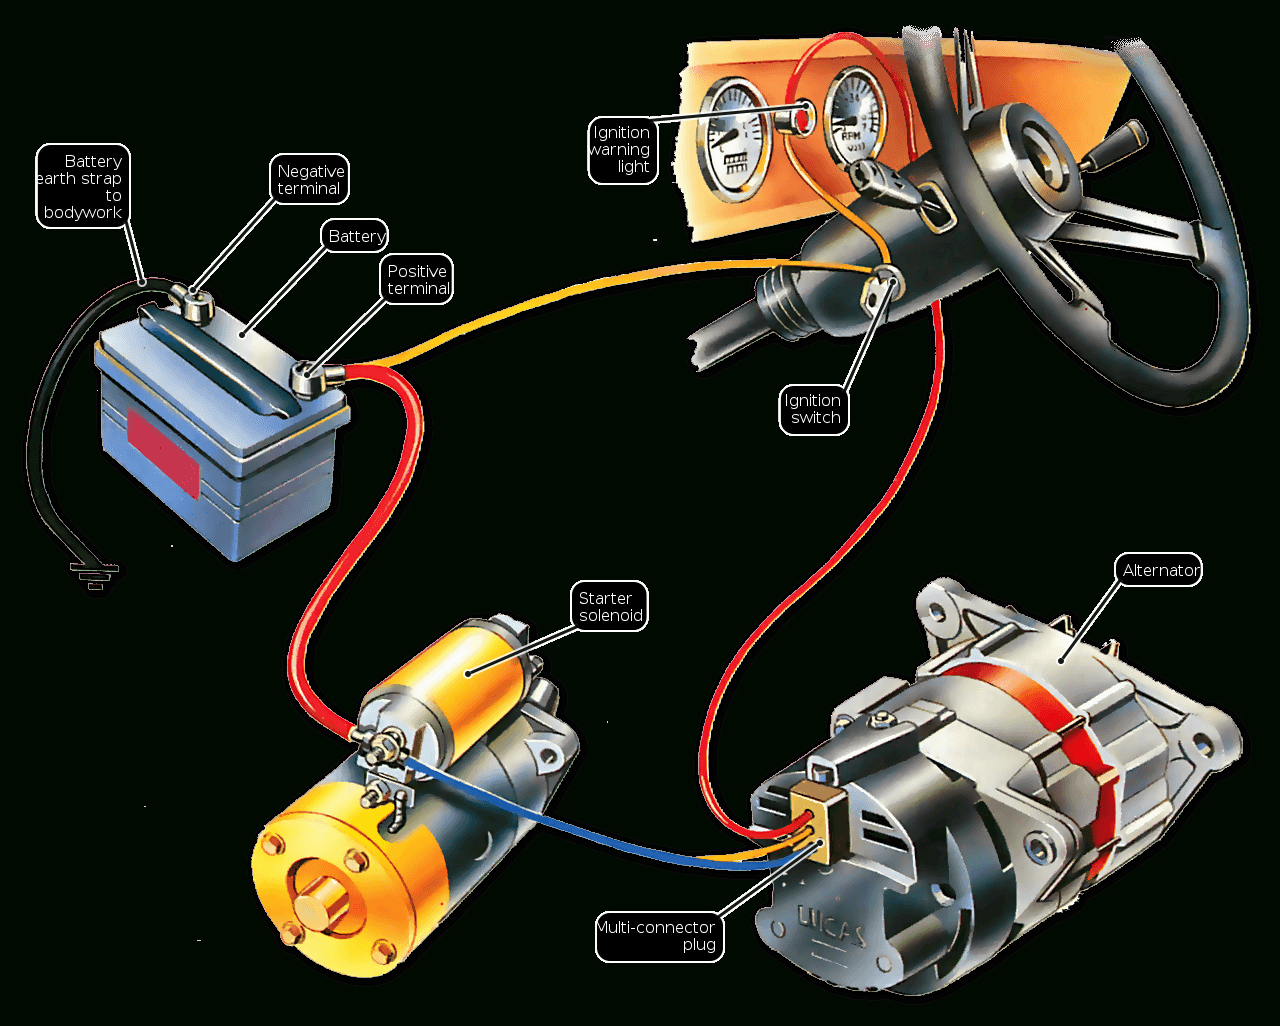 Troubleshooting The Ignition Warning Light | How A Car Works - Wiring Diagram Replace Generator With Alternator